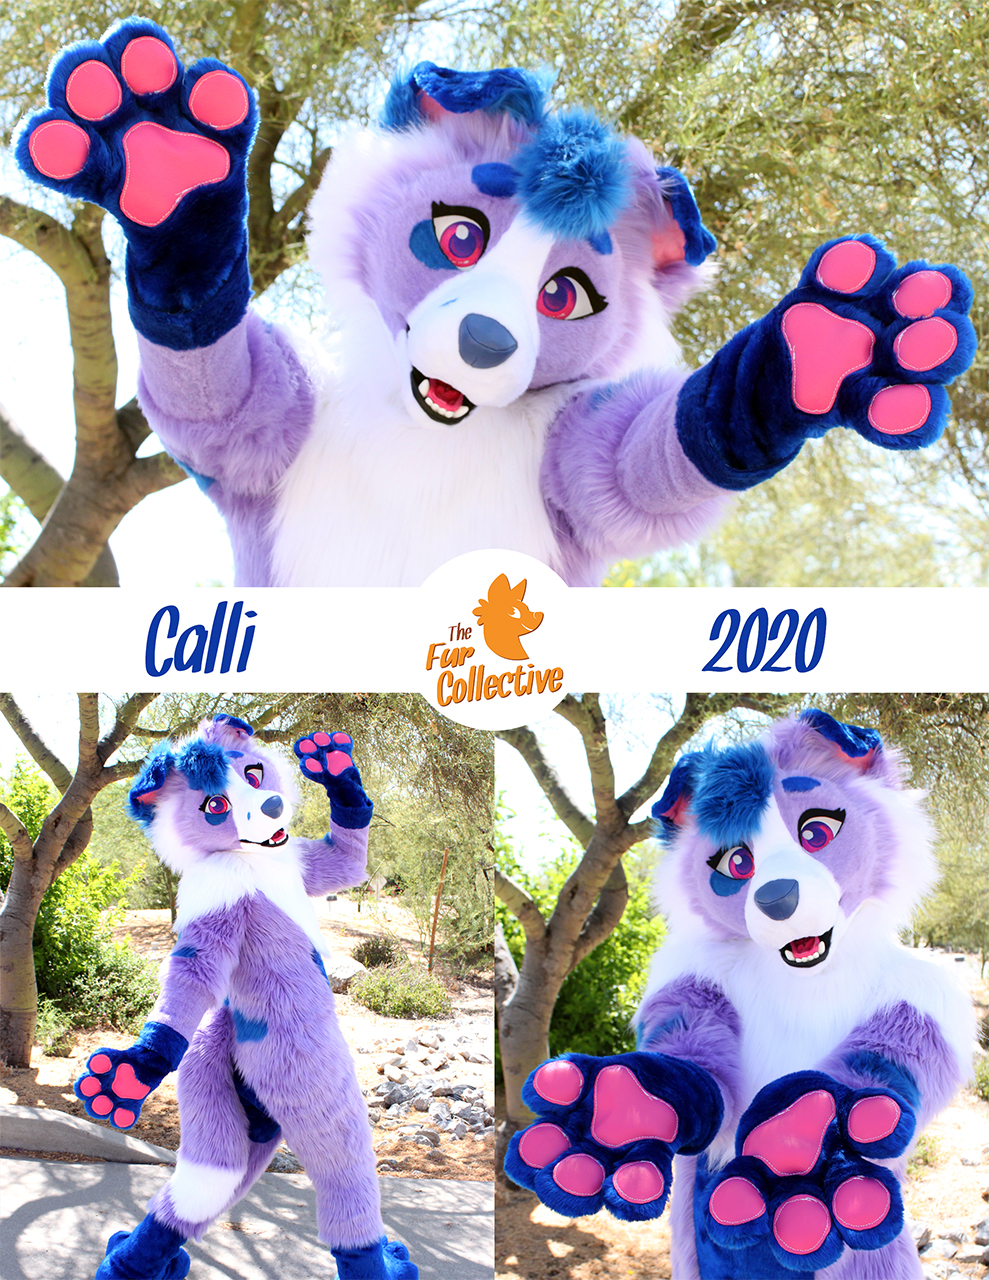 Most recent image: Calli the Collie!